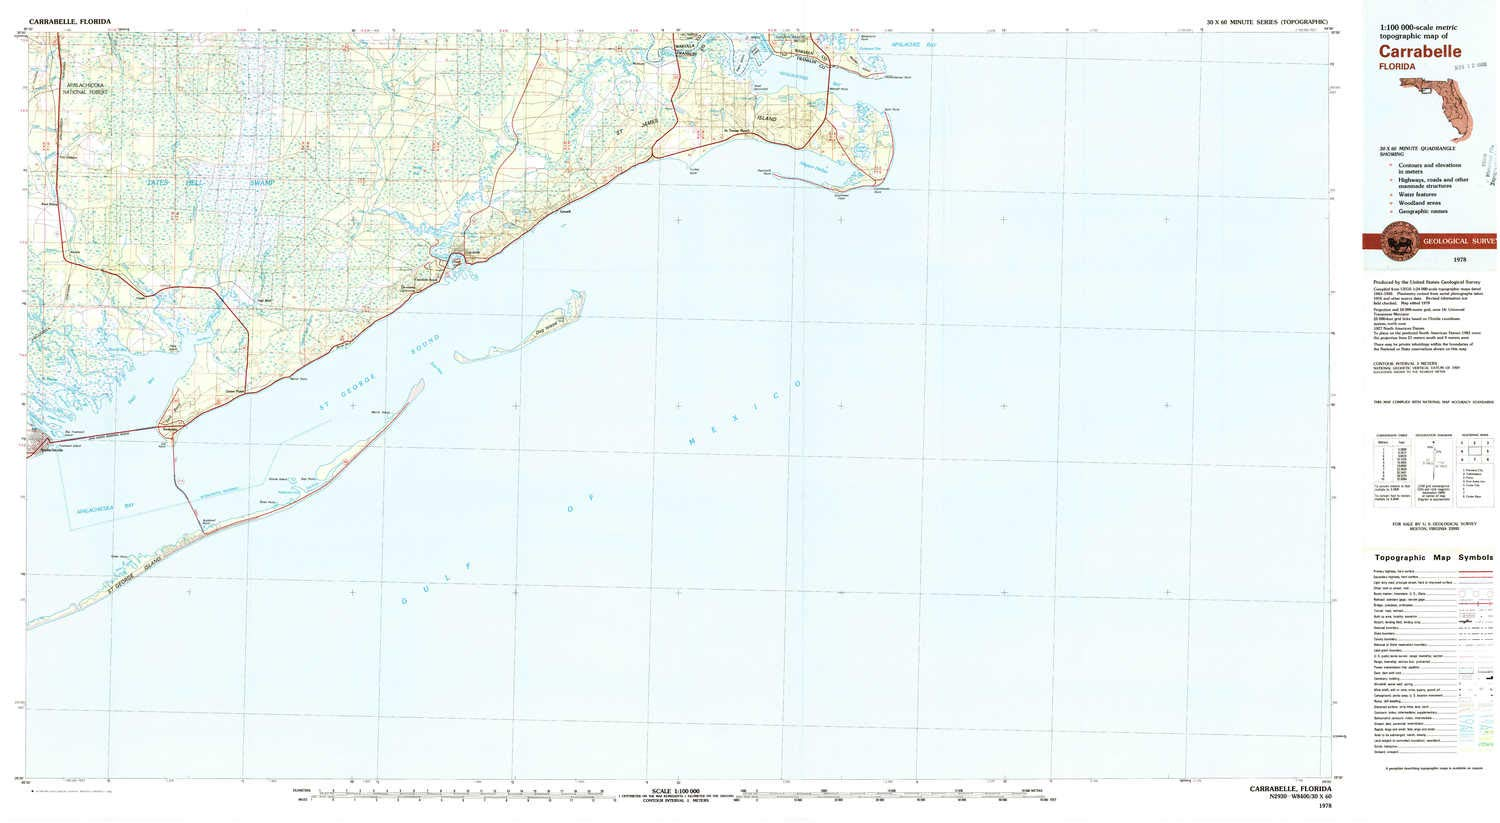 Amazon.com : YellowMaps Carrabelle FL topo map, 1:100000 ... on bradfordville florida map, pascagoula florida map, sharpes florida map, brookridge florida map, evinston florida map, sumatra florida map, molino florida map, pensacola bay florida map, campbellton florida map, warrington florida map, vamo florida map, baton rouge florida map, north carolina florida map, st. johns river florida map, hypoluxo florida map, south daytona florida map, st. george island state park florida map, pretty bayou florida map, mobile florida map, massachusetts florida map,